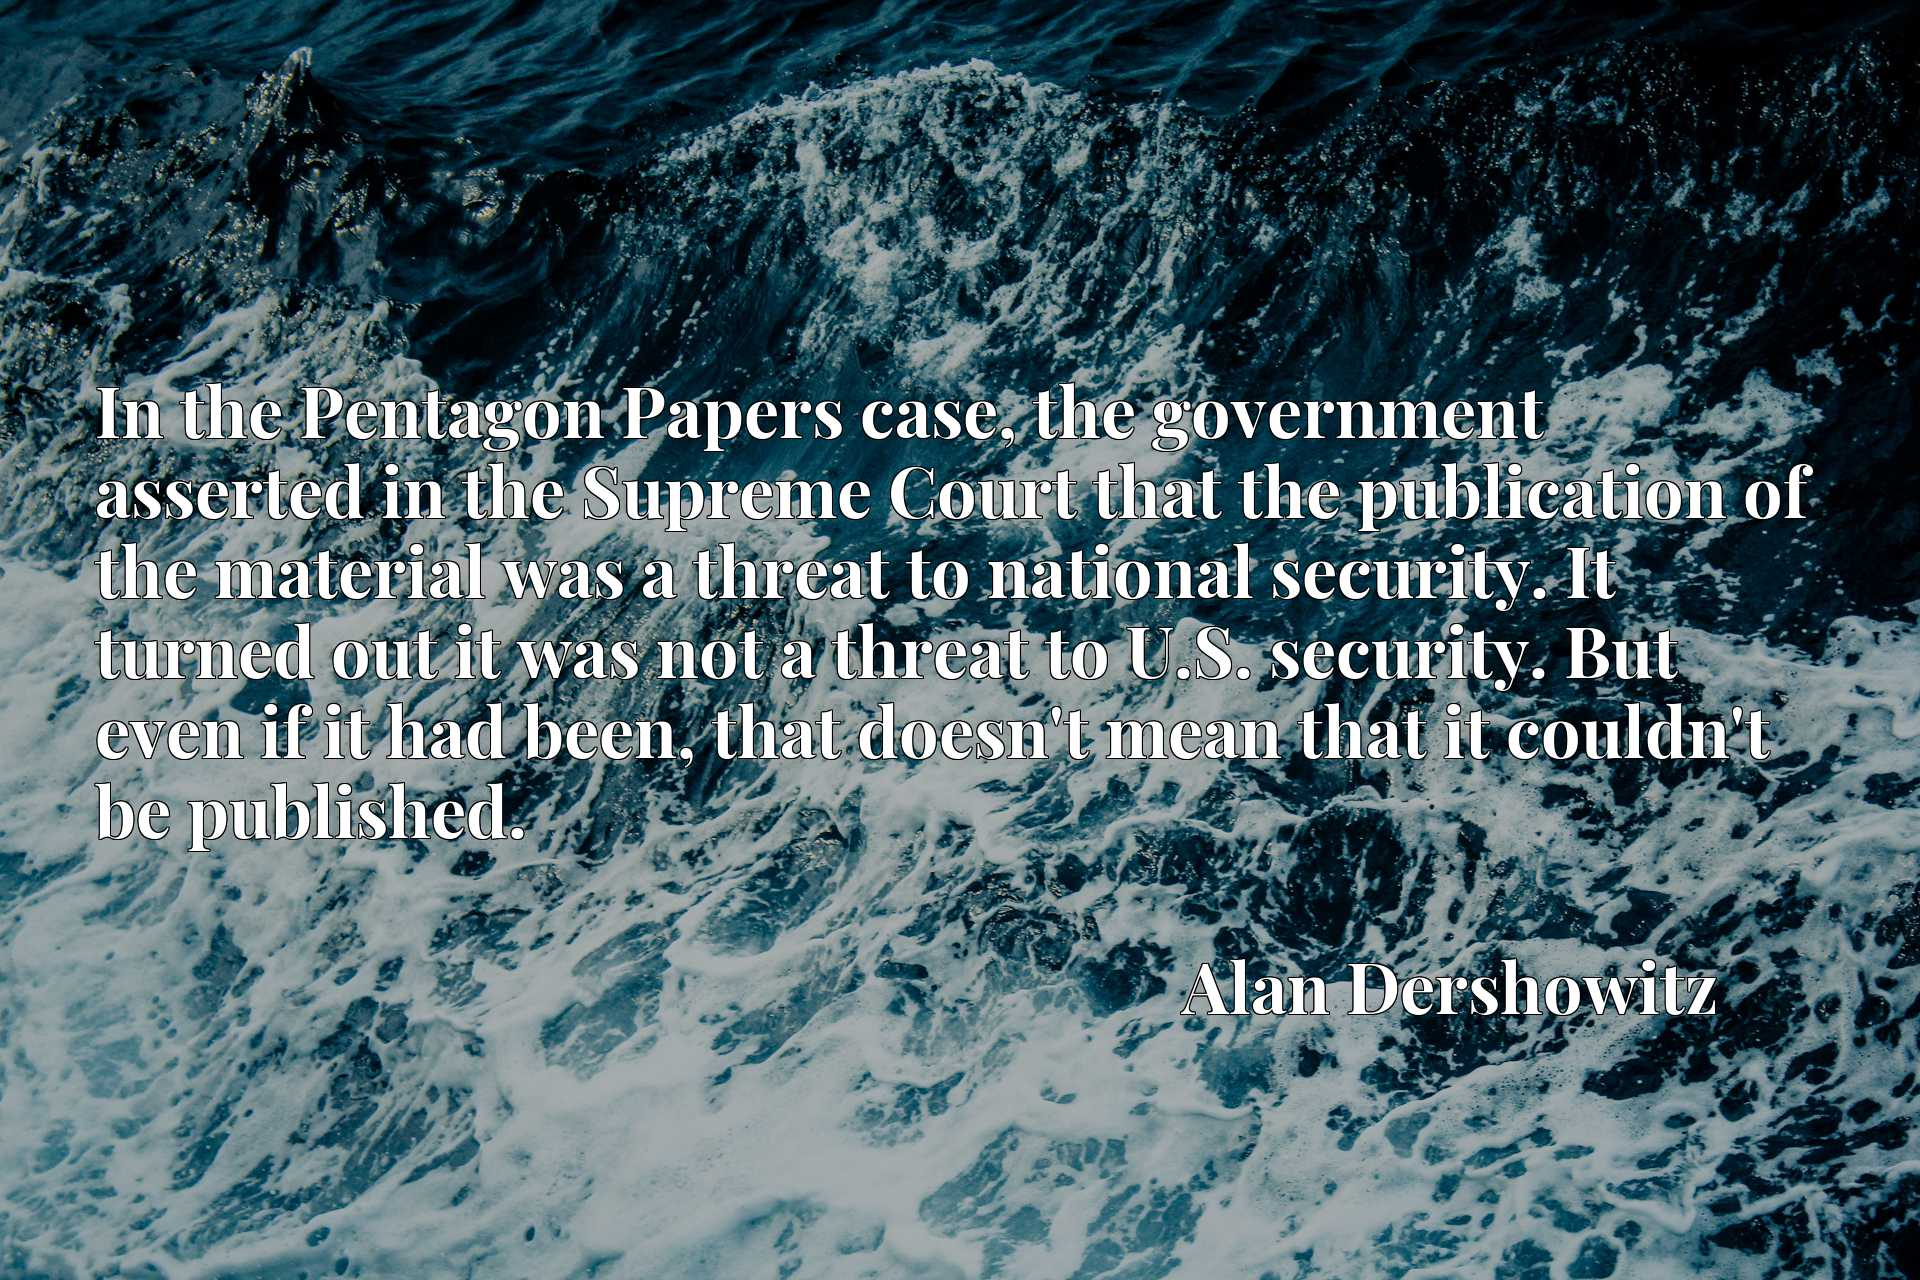 In the Pentagon Papers case, the government asserted in the Supreme Court that the publication of the material was a threat to national security. It turned out it was not a threat to U.S. security. But even if it had been, that doesn't mean that it couldn't be published.